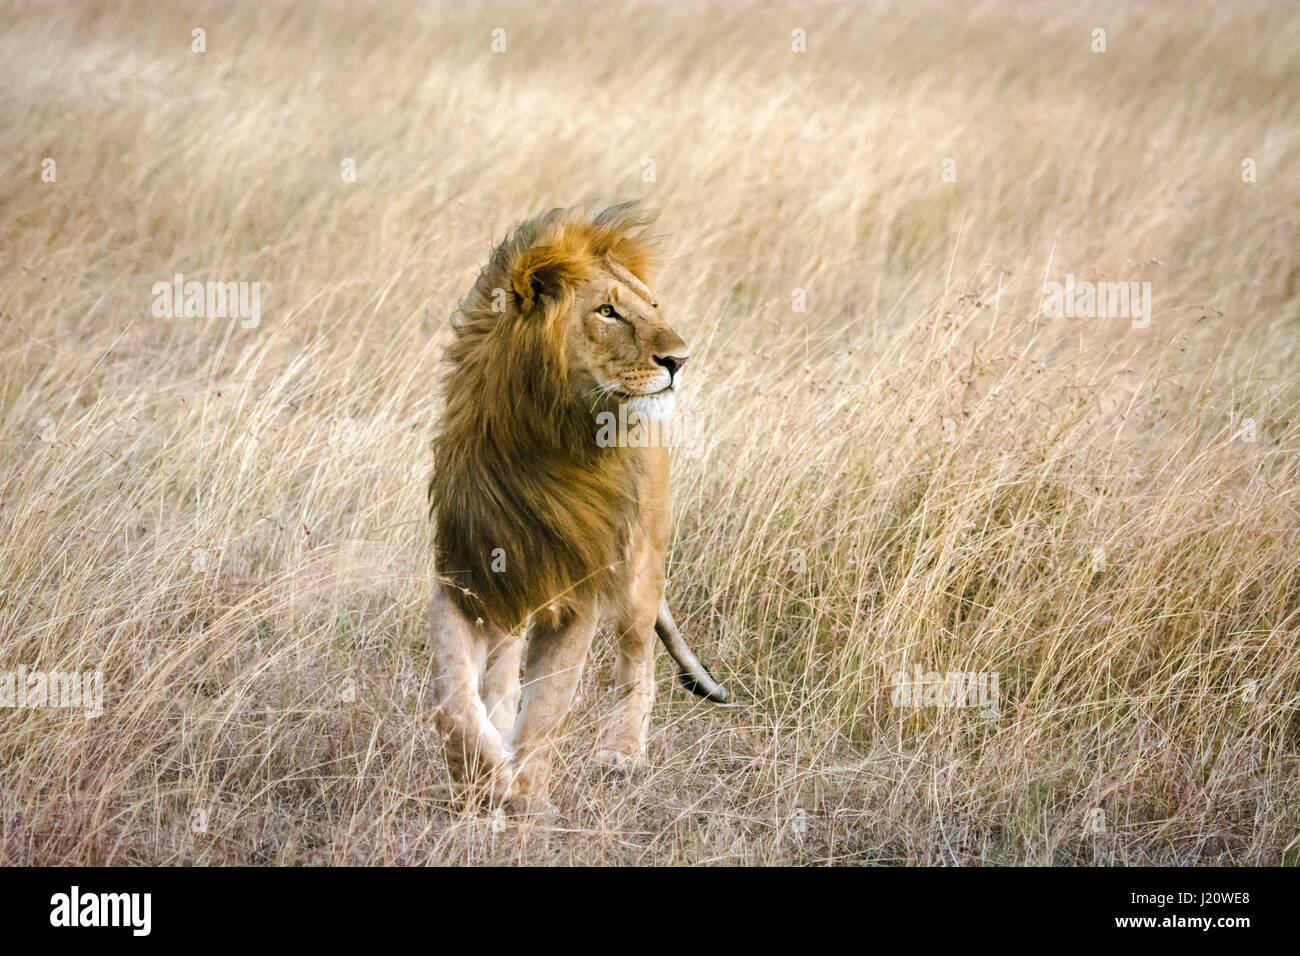 solitary-wild-african-lion-panthera-leo-